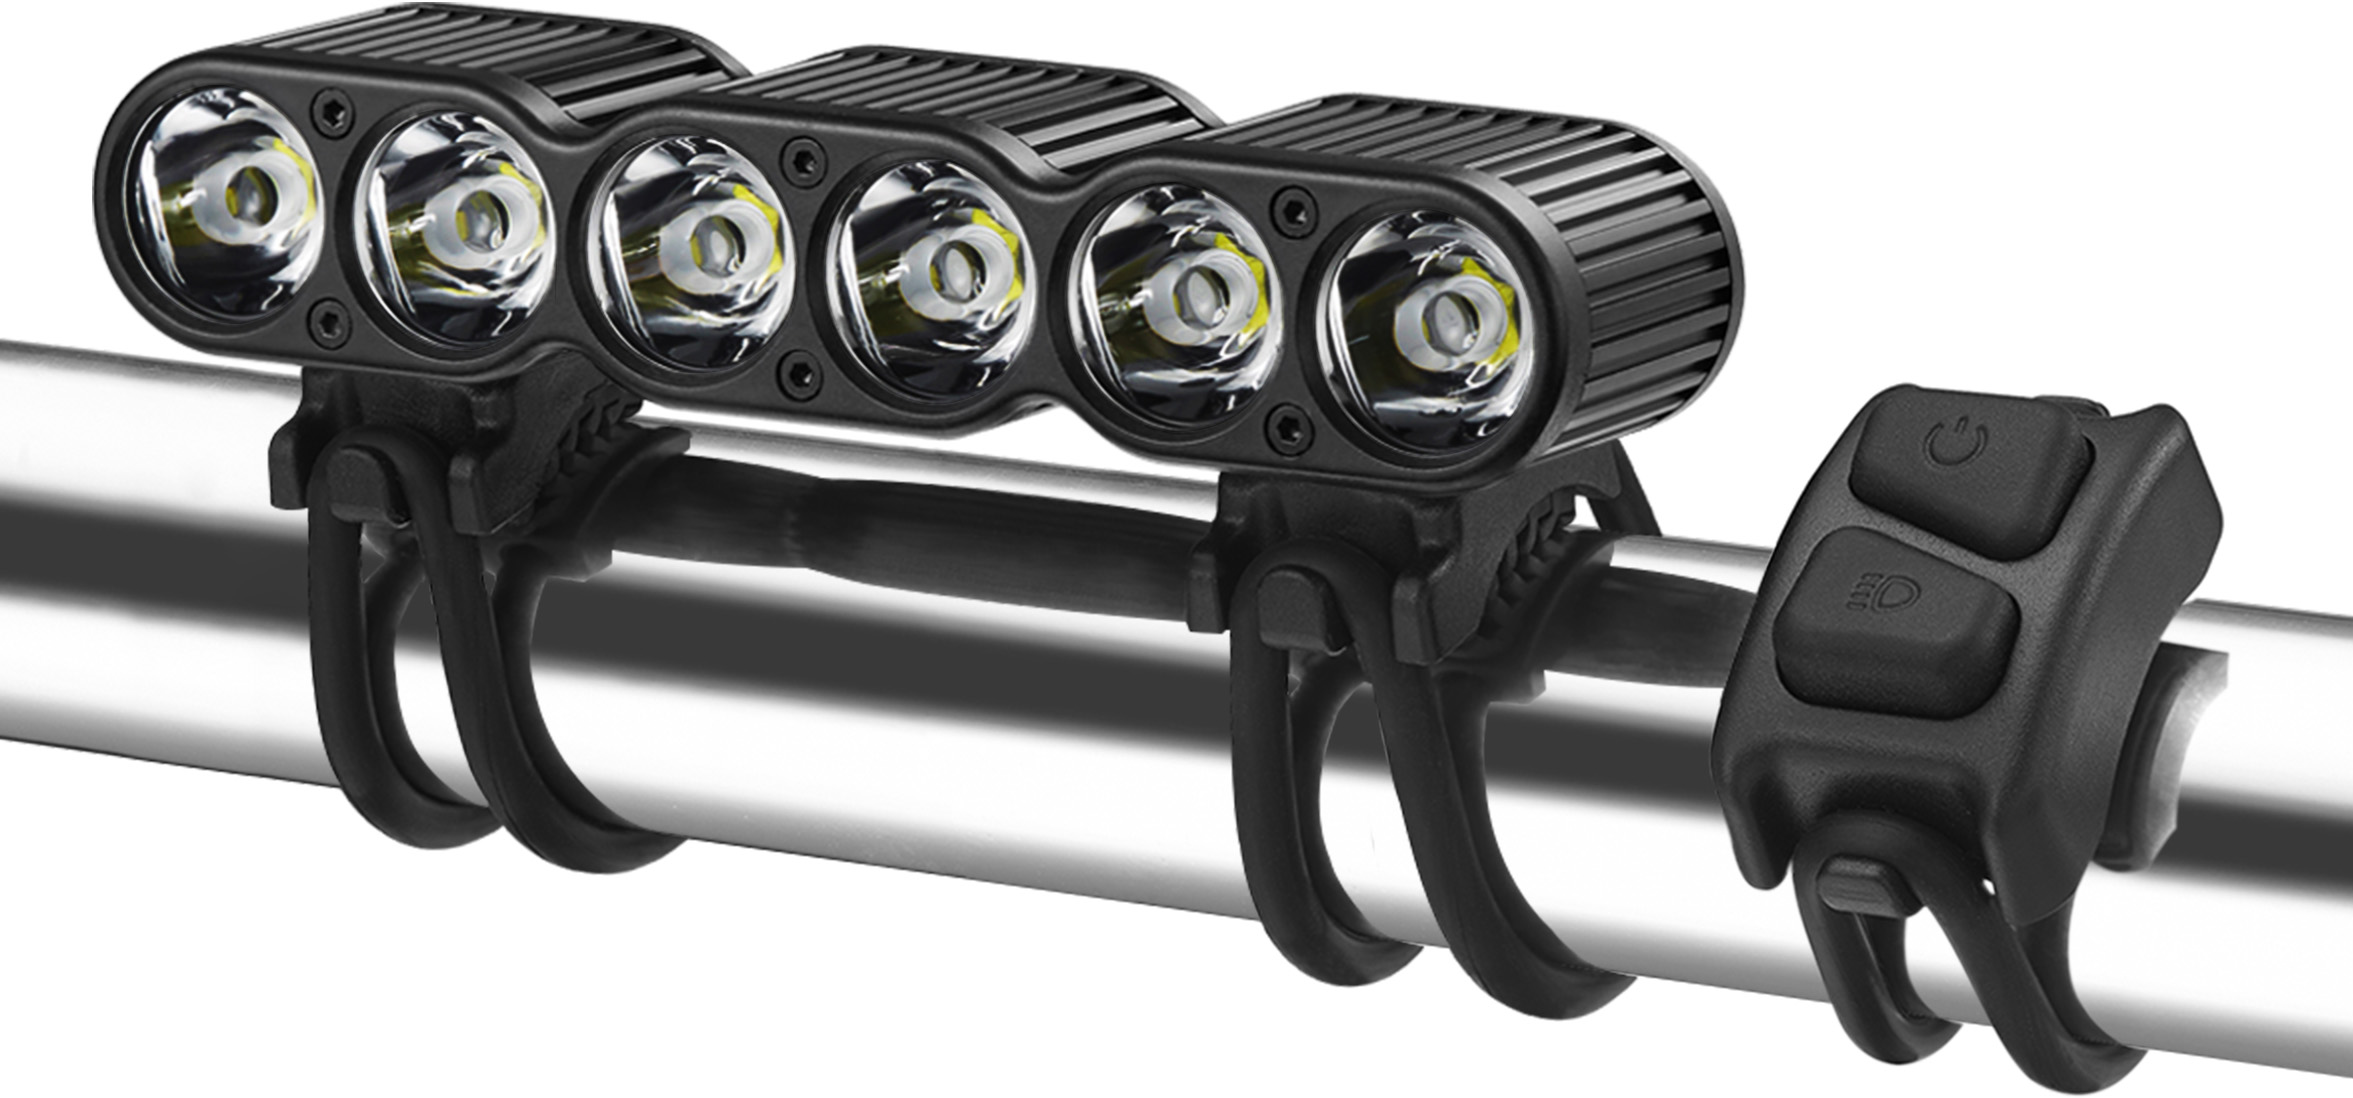 Gemini TITAN 4000 OLED 4-Cell Front Light | Front lights